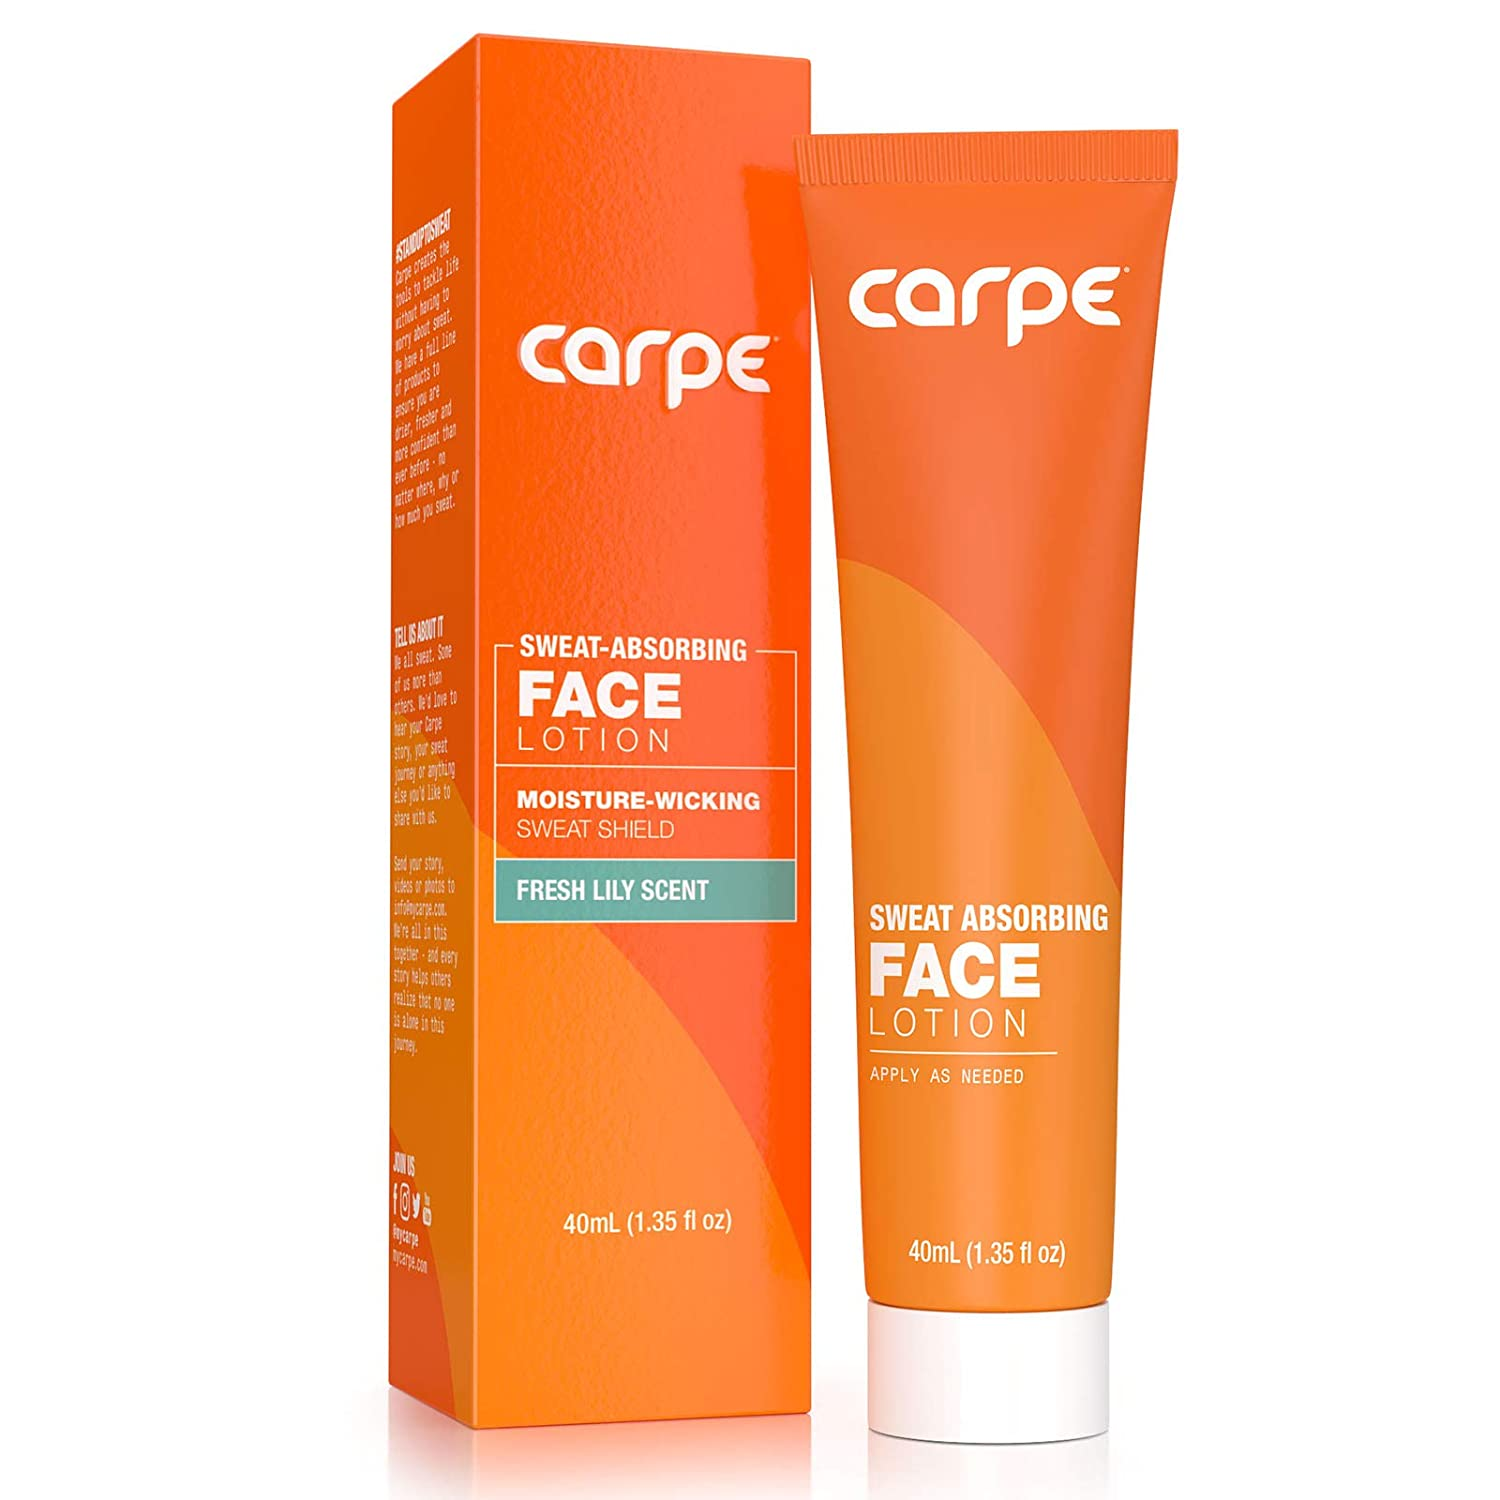 Carpe Sweat Absorbing Face - Helps Keep Your Face, Forehead, and Scalp Dry - Sweat Absorbing Gelled Lotion - Plus Oily Face Control - With Silica Microspheres and Jojoba Esters : Beauty